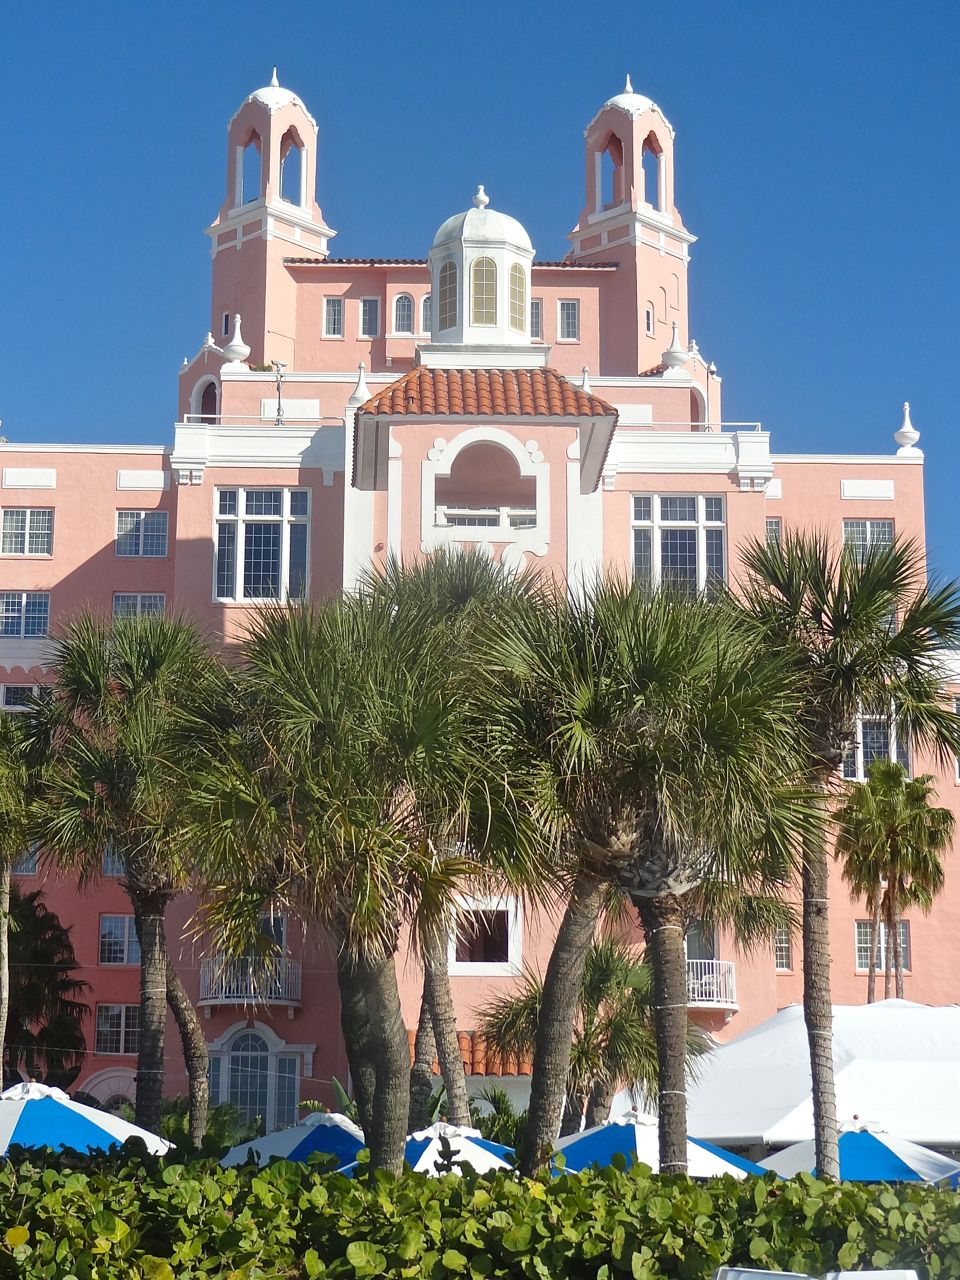 Scrumpdillyicious: The Don César: The Pink Palace Of St